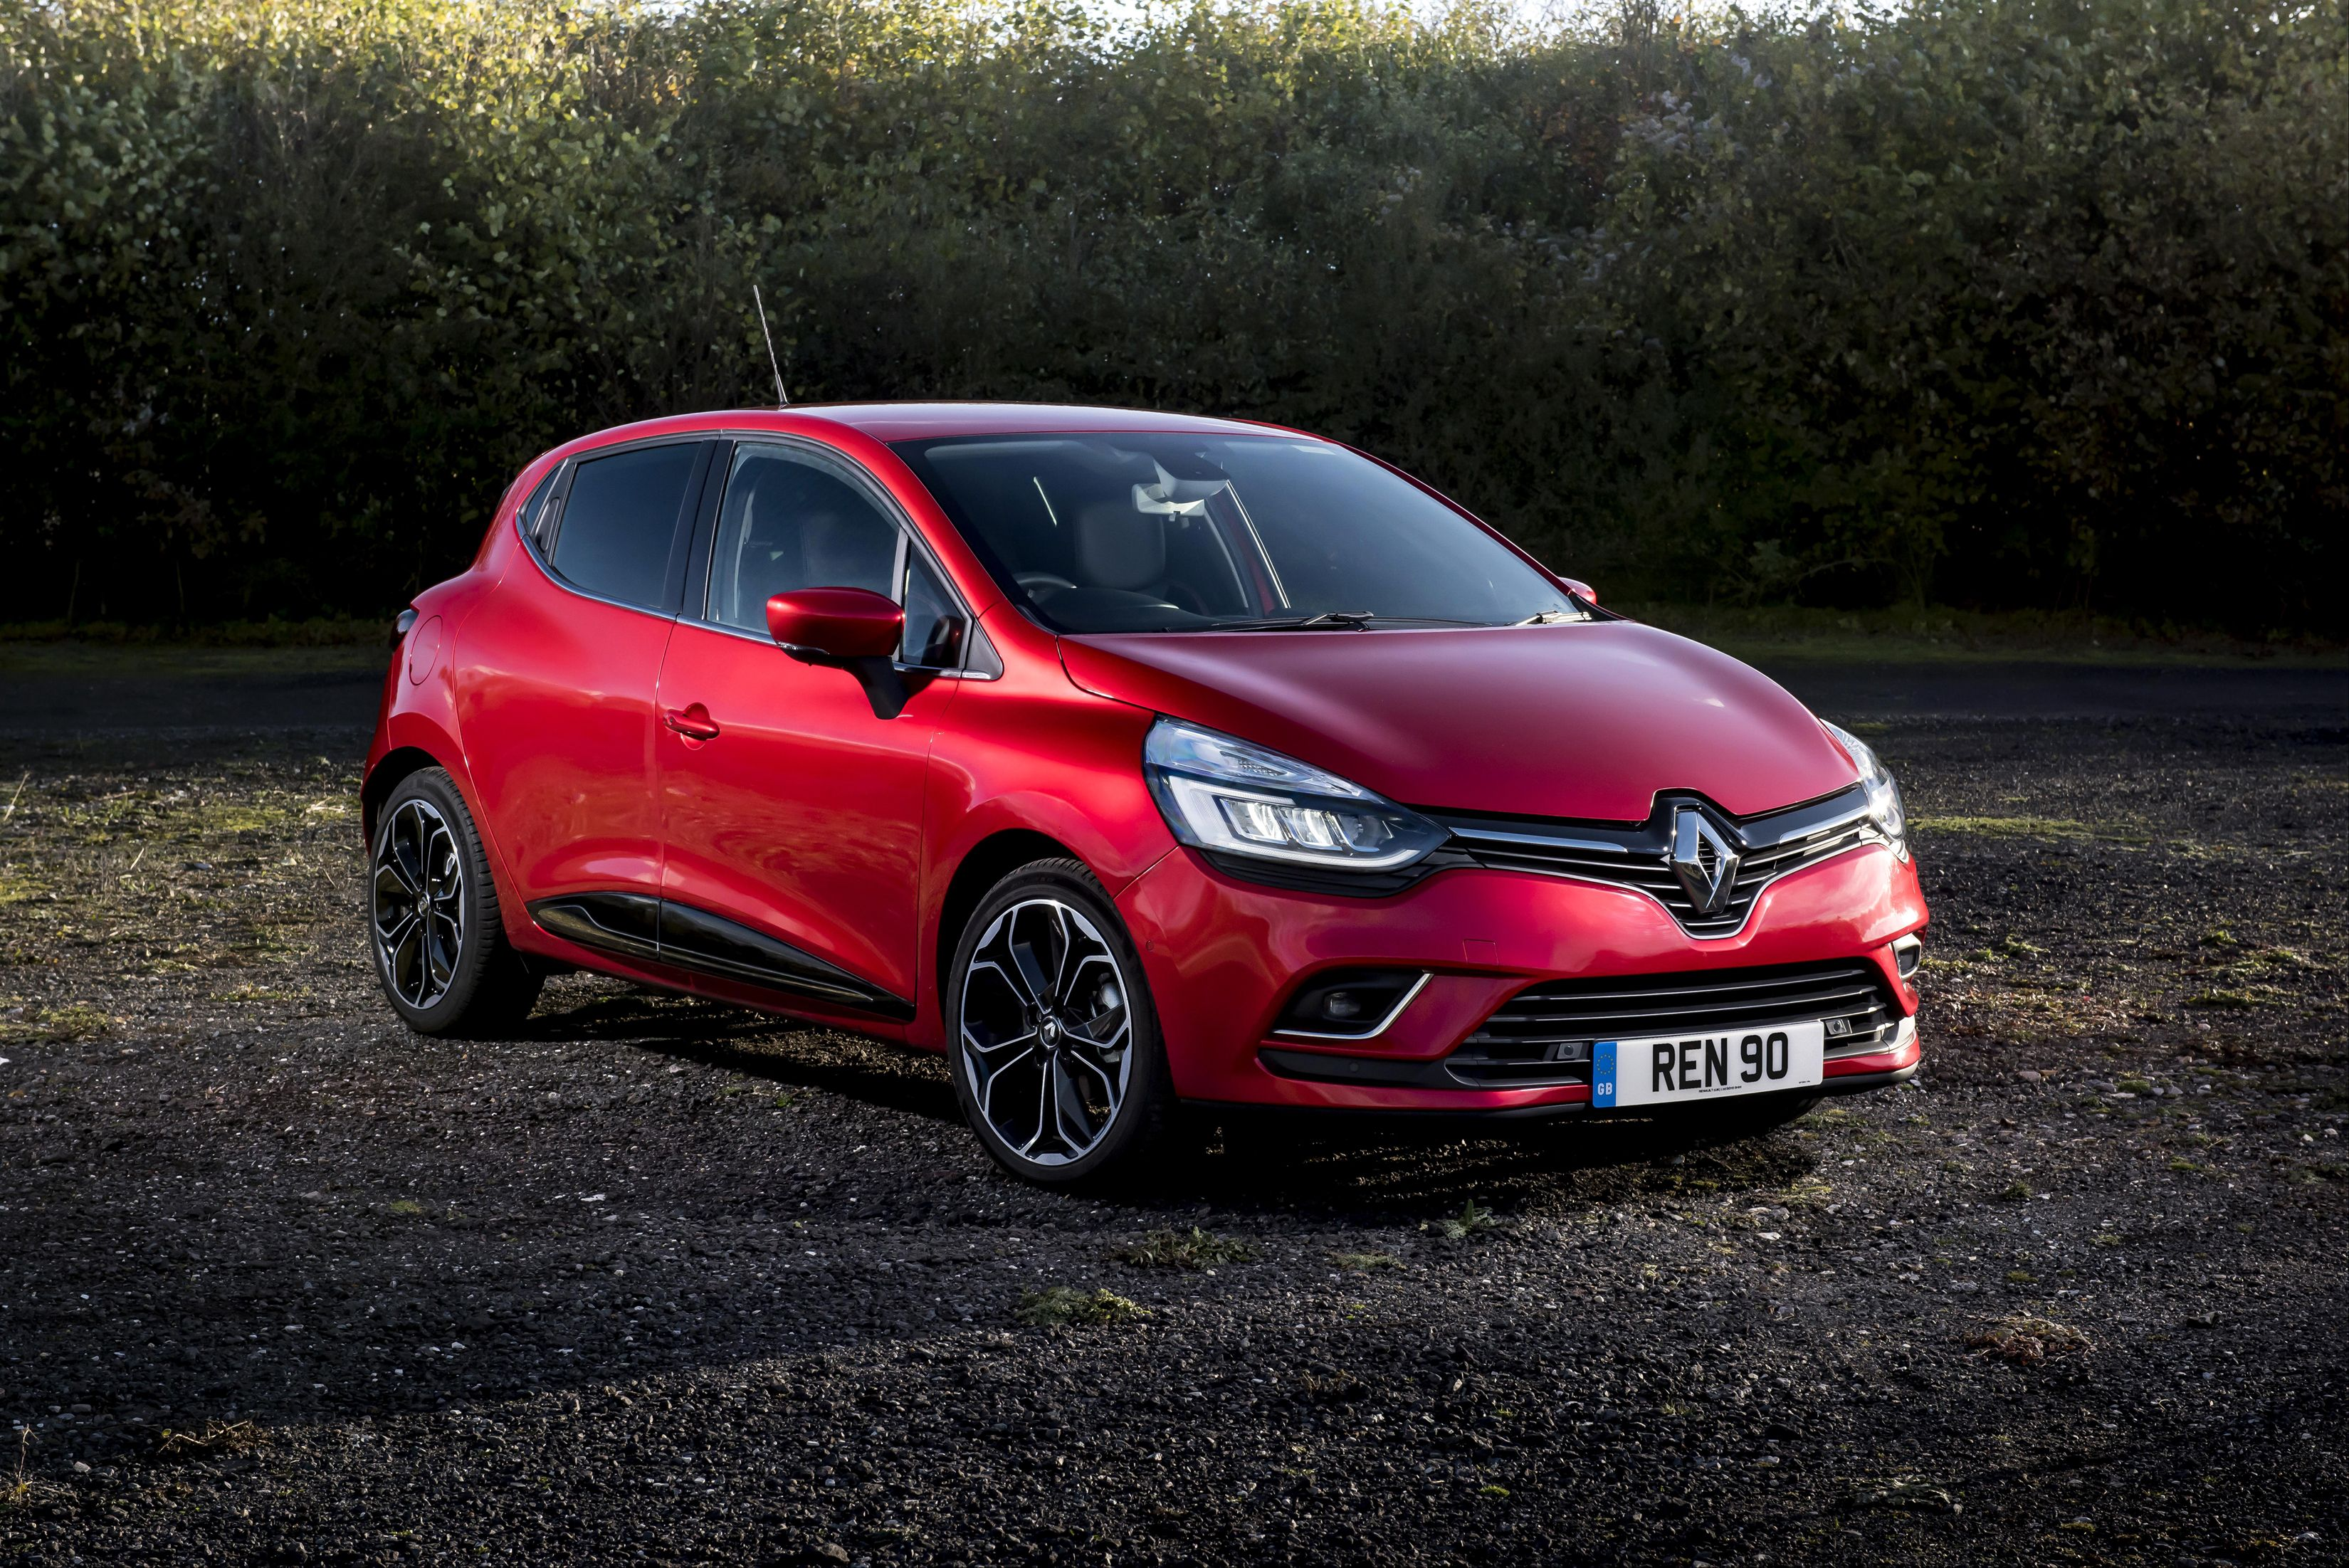 16 Renault Clio HD Wallpapers